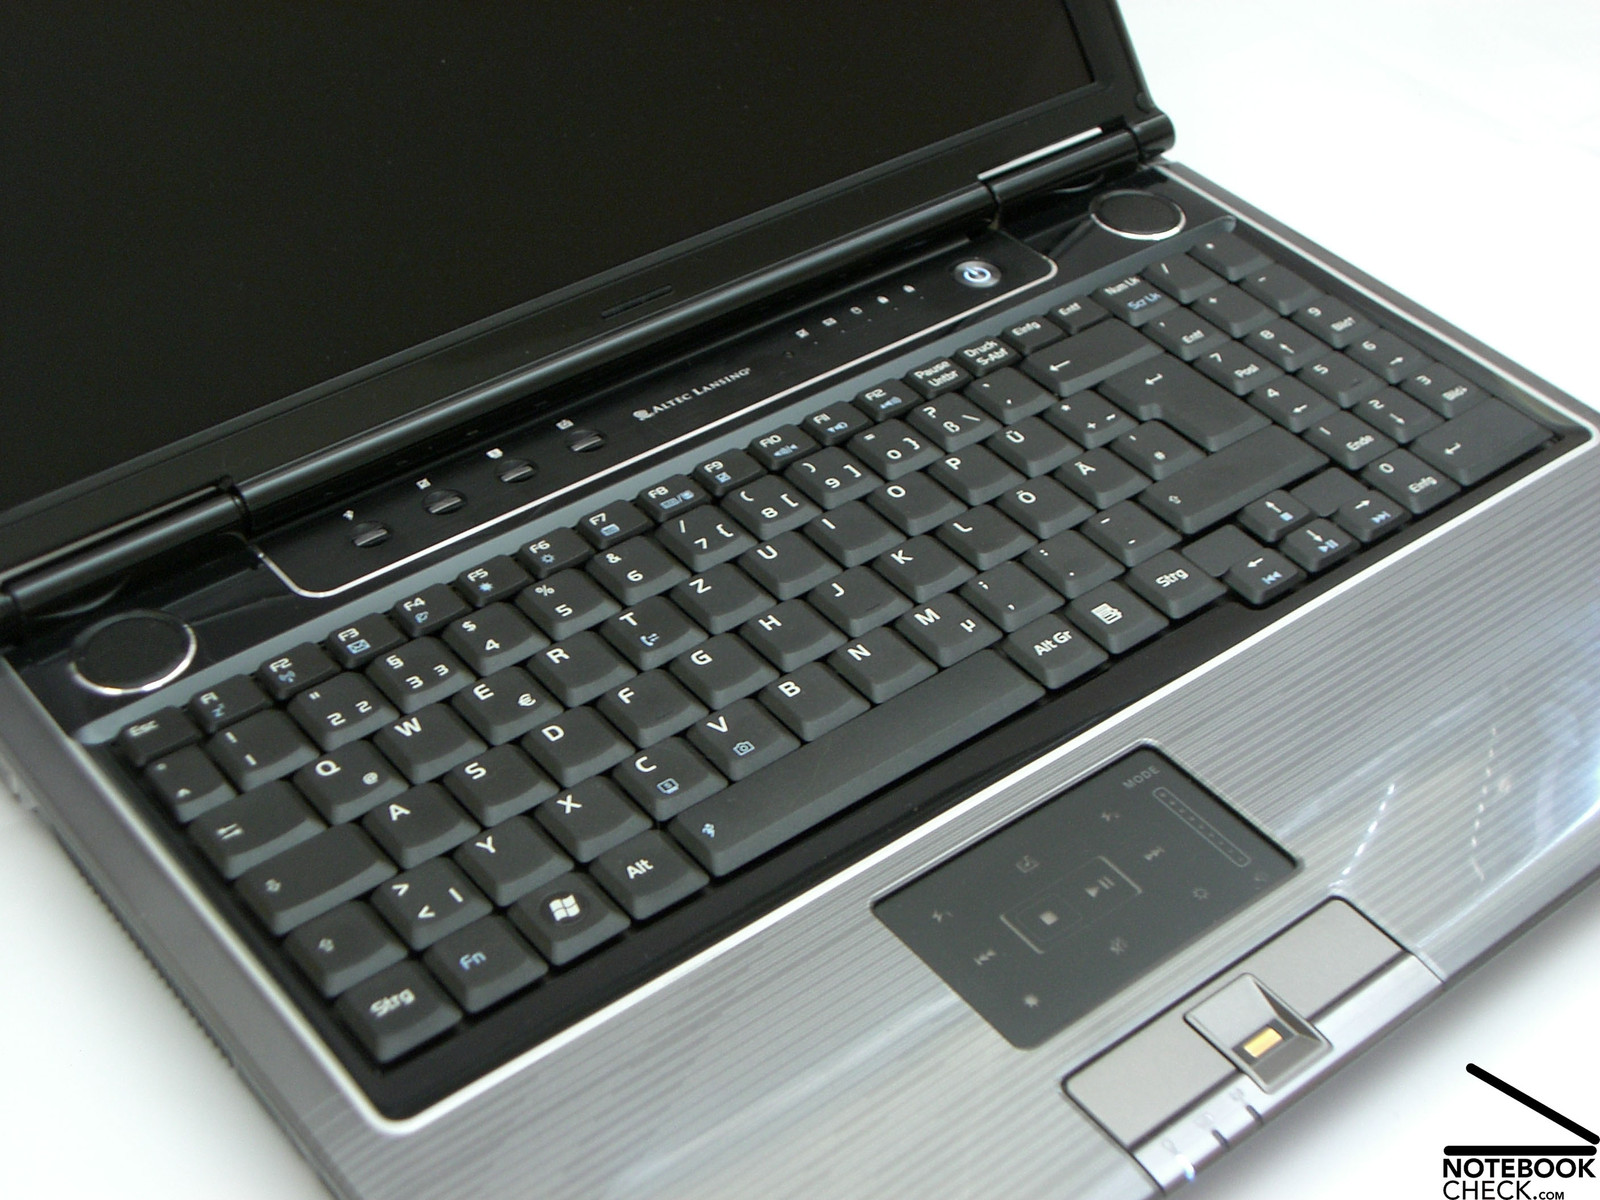 Asus M50Sa Notebook Audio Windows 8 X64